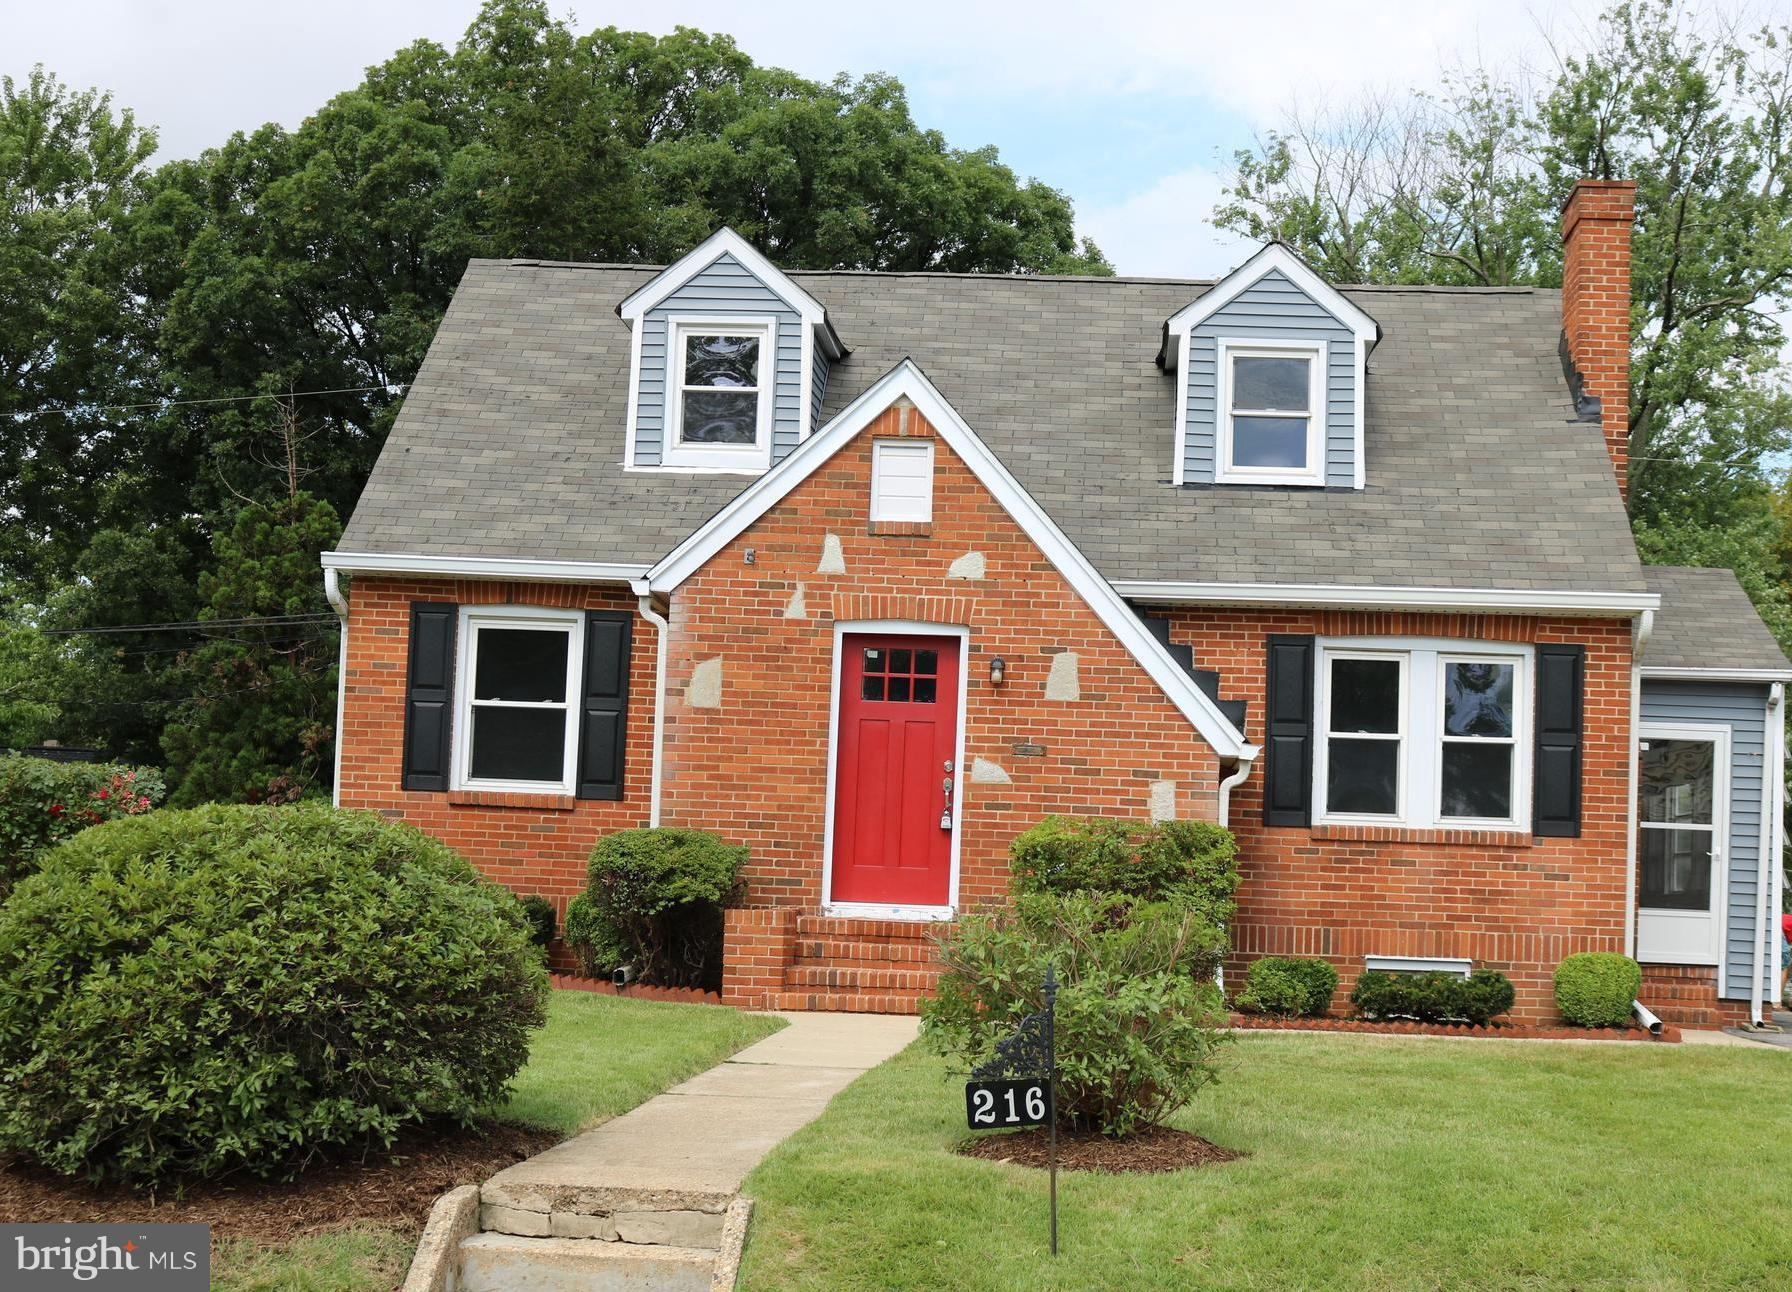 216 HOMEWOOD ROAD, LINTHICUM HEIGHTS, MD 21090